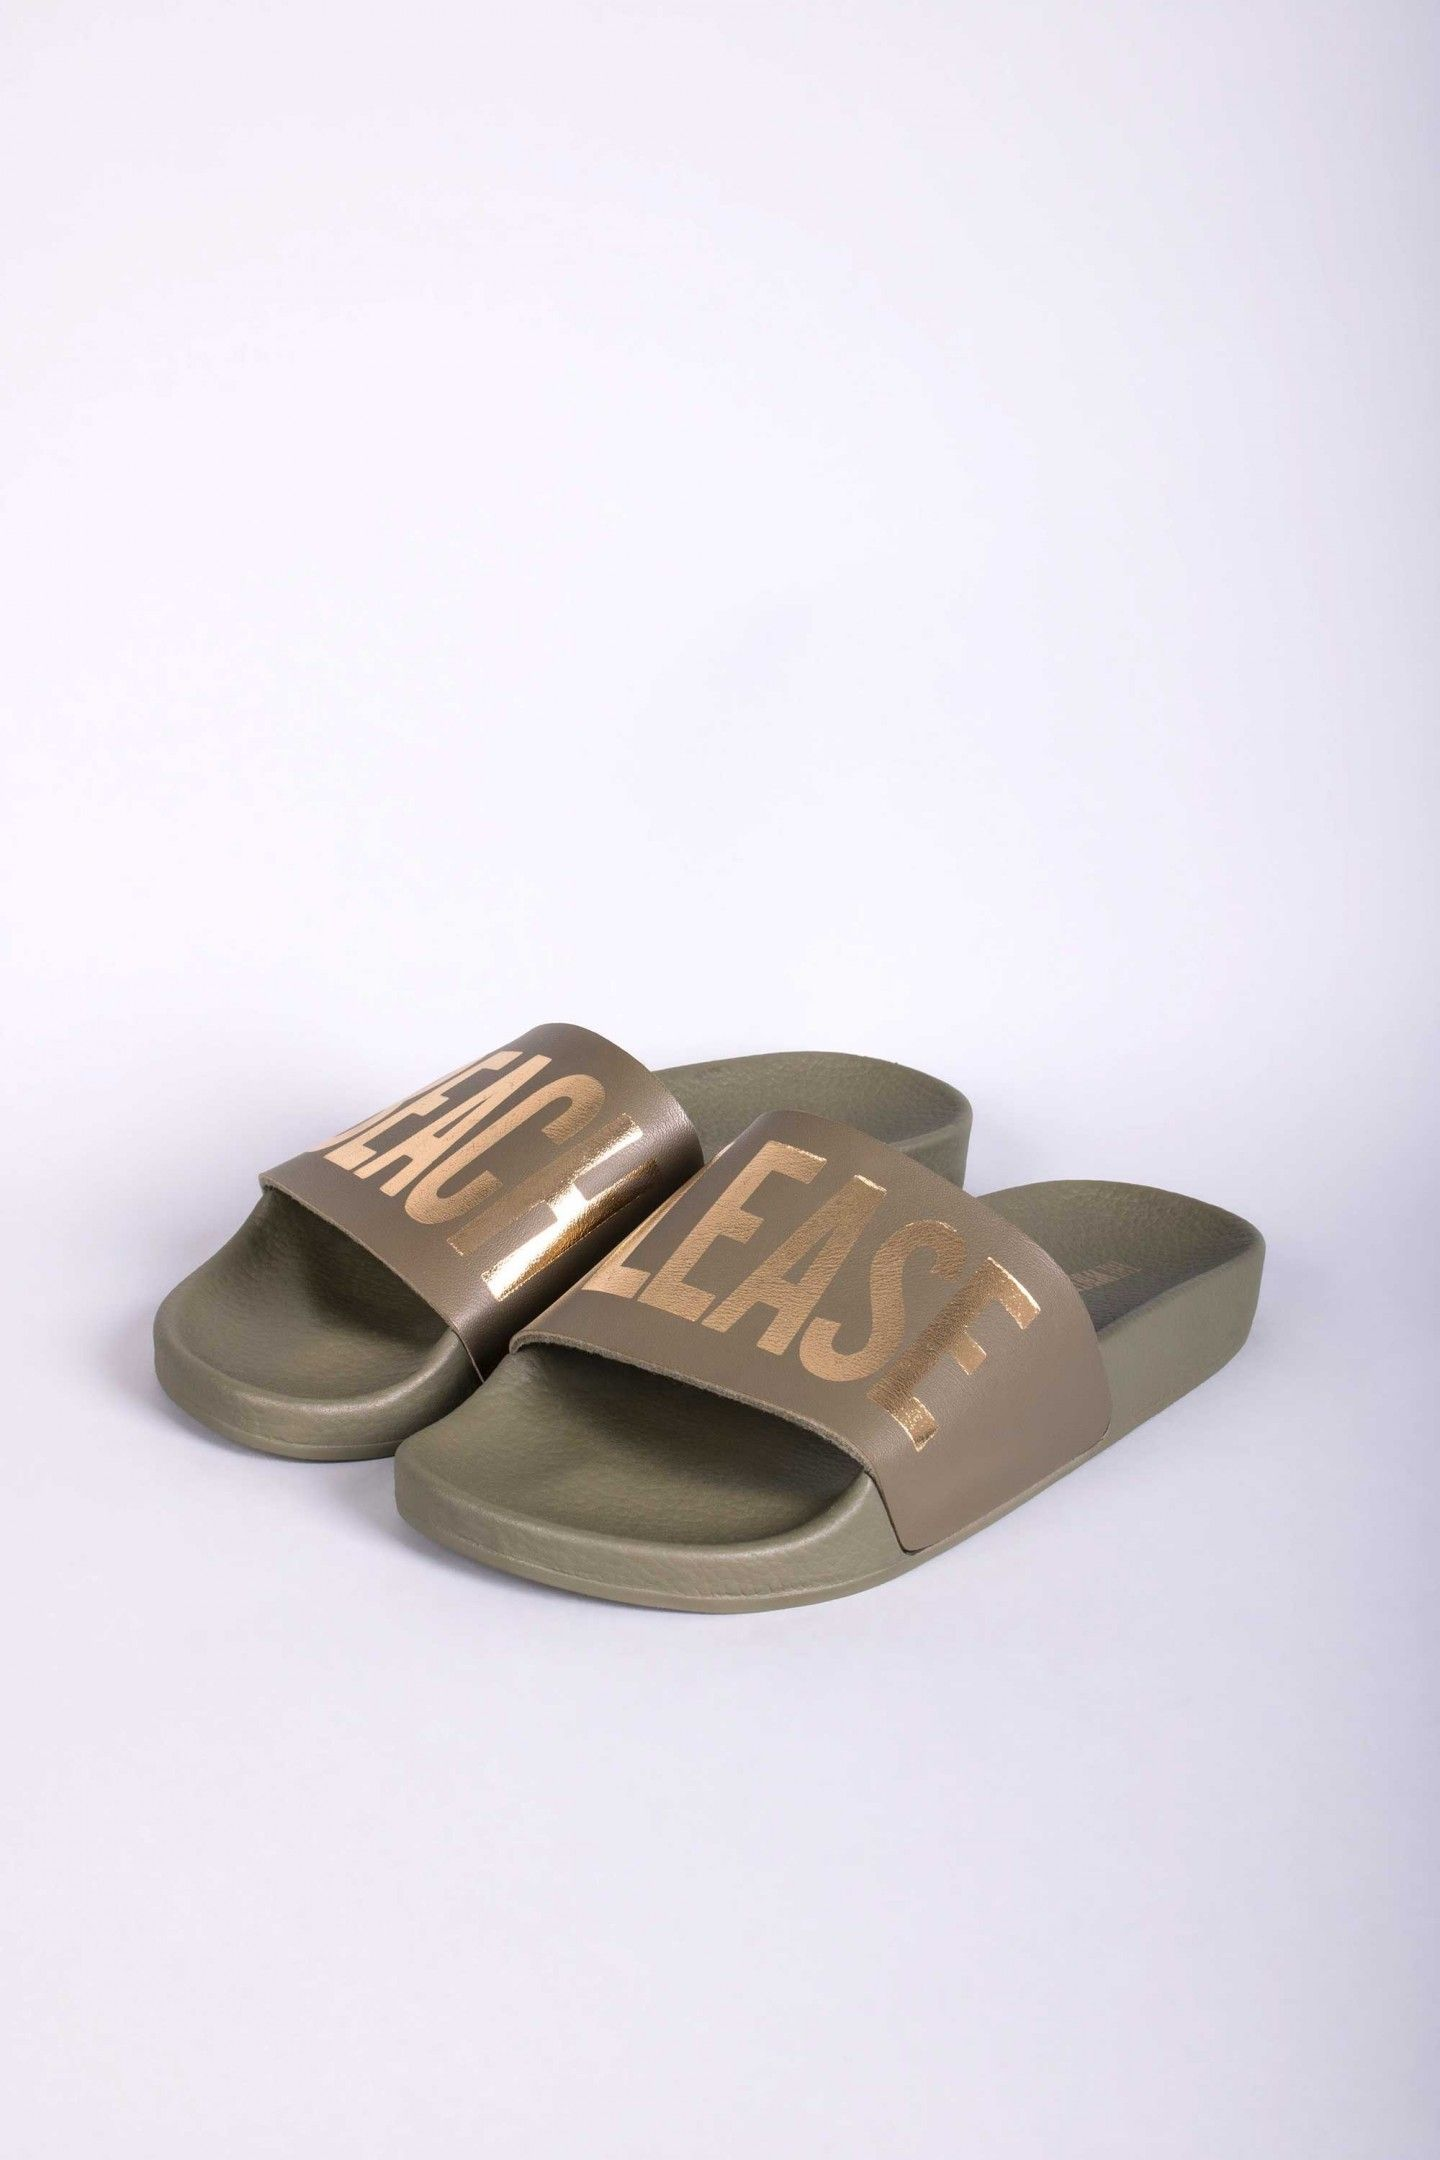 34e3e71d84328b BEACH ARMY - TheWhiteBrand SS 18 New Collection. Women s flat slide sandal  in army green